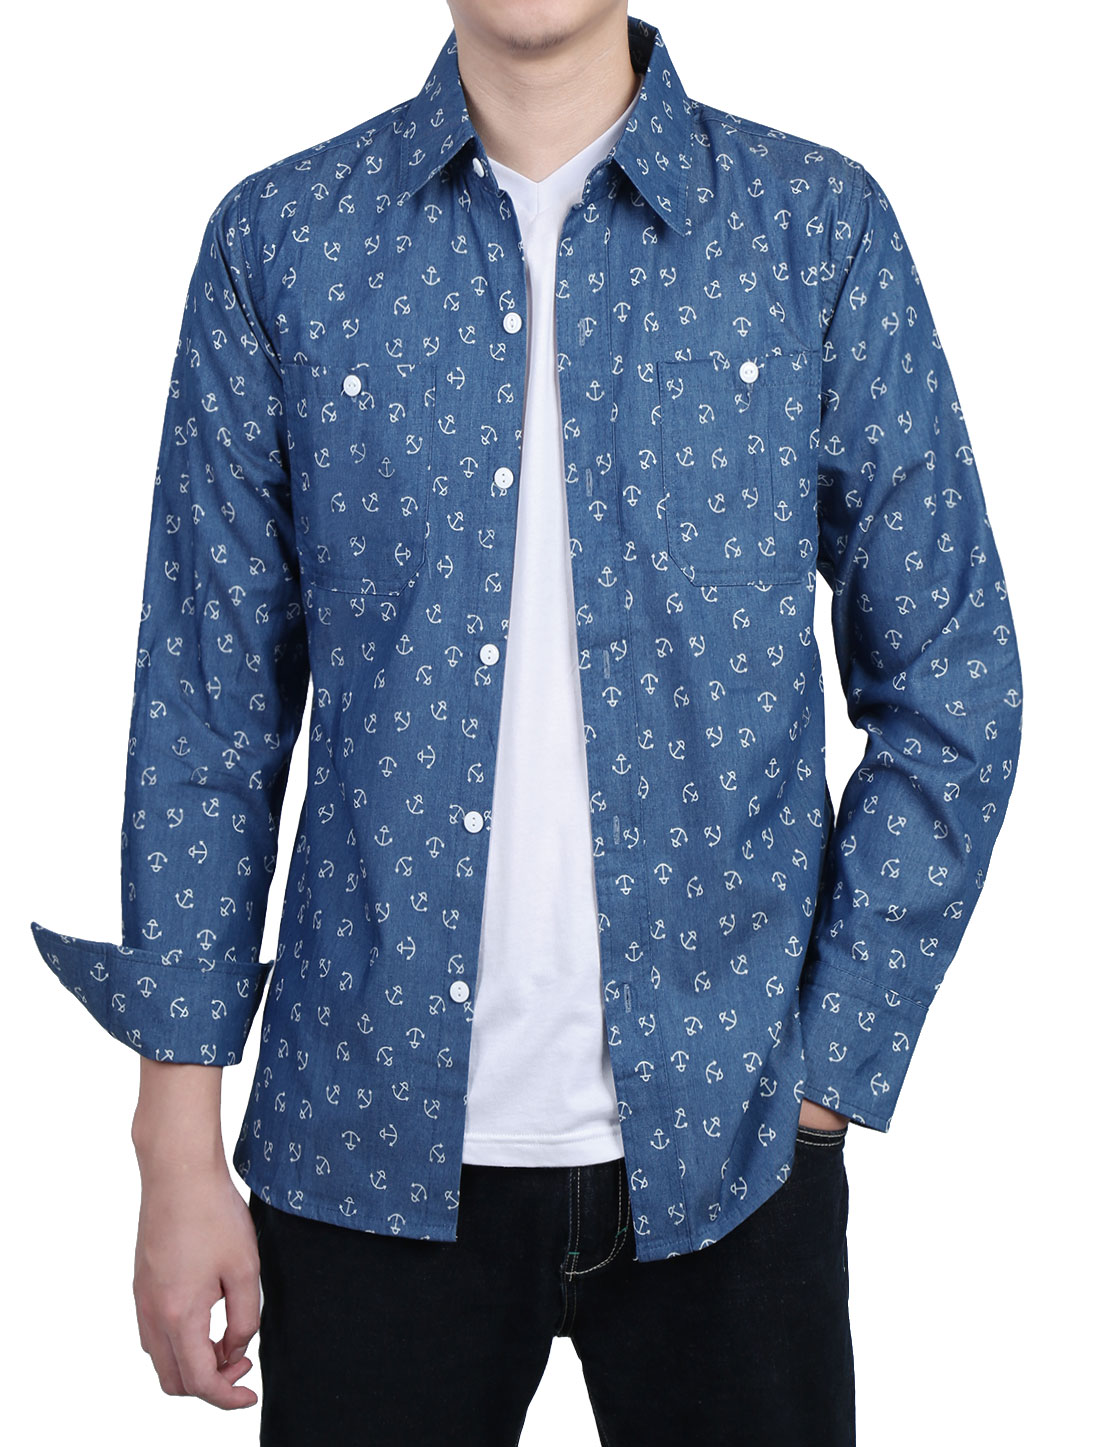 Men Long Sleeve Anchor Print Button Down Shirt Tops Navy Blue L